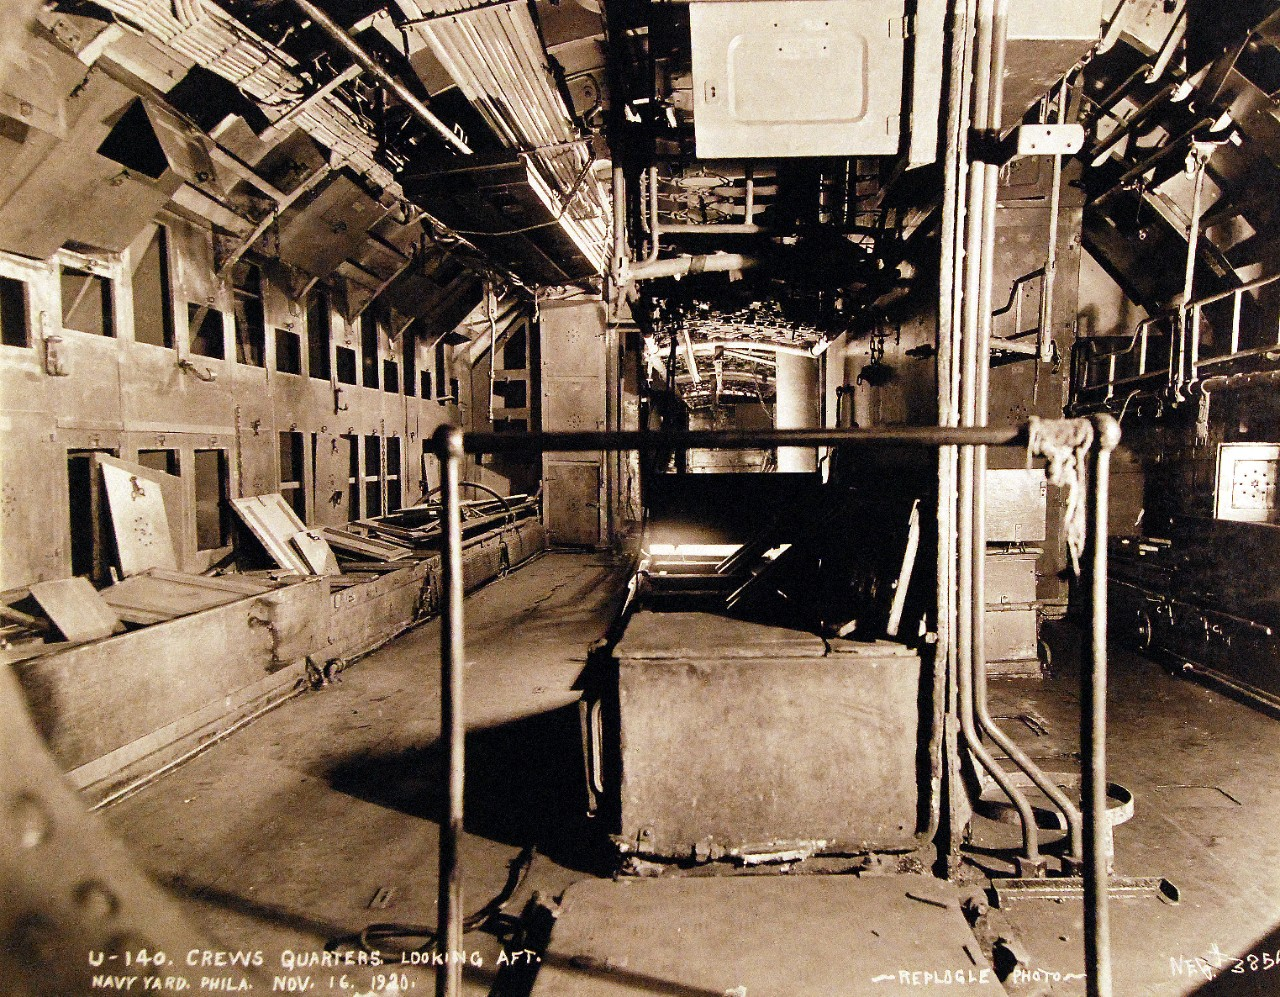 19-N-3854:   German submarine, U-140, interior view of crew quarters, looking aft, while at the Philadelphia Navy Yard, November 16, 1920.    Official Bureau of Ships Photograph, now in the collections of the National Archives.   (12/09/2014).